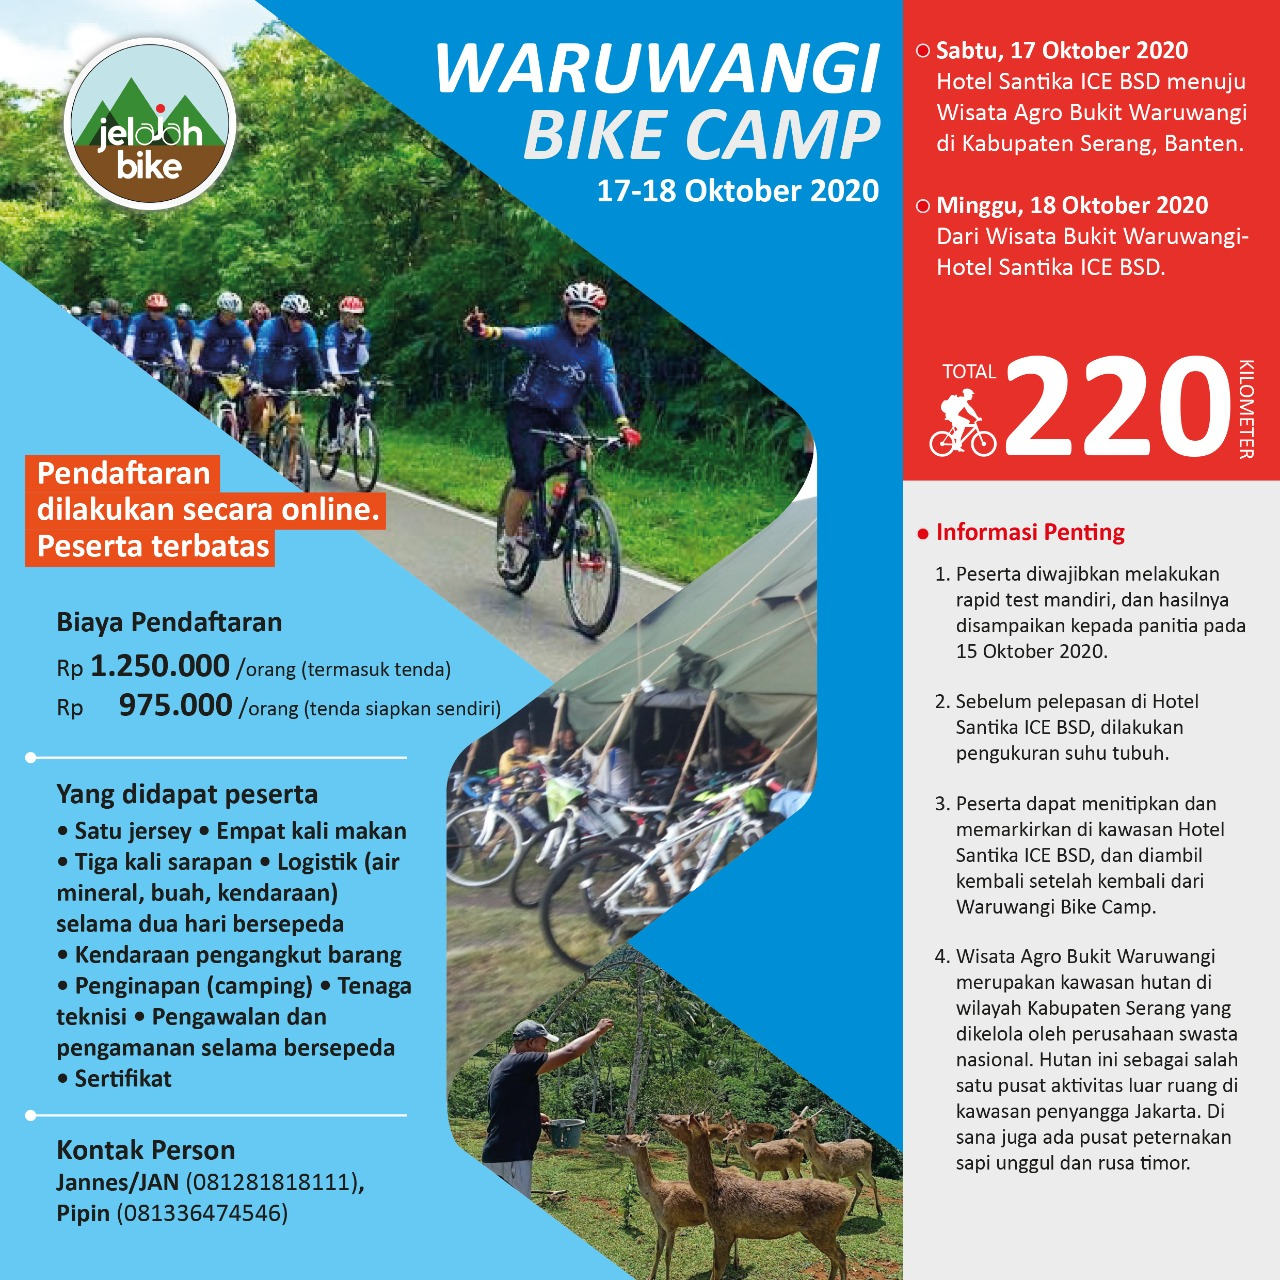 Waruwangi Bike Camp 2020